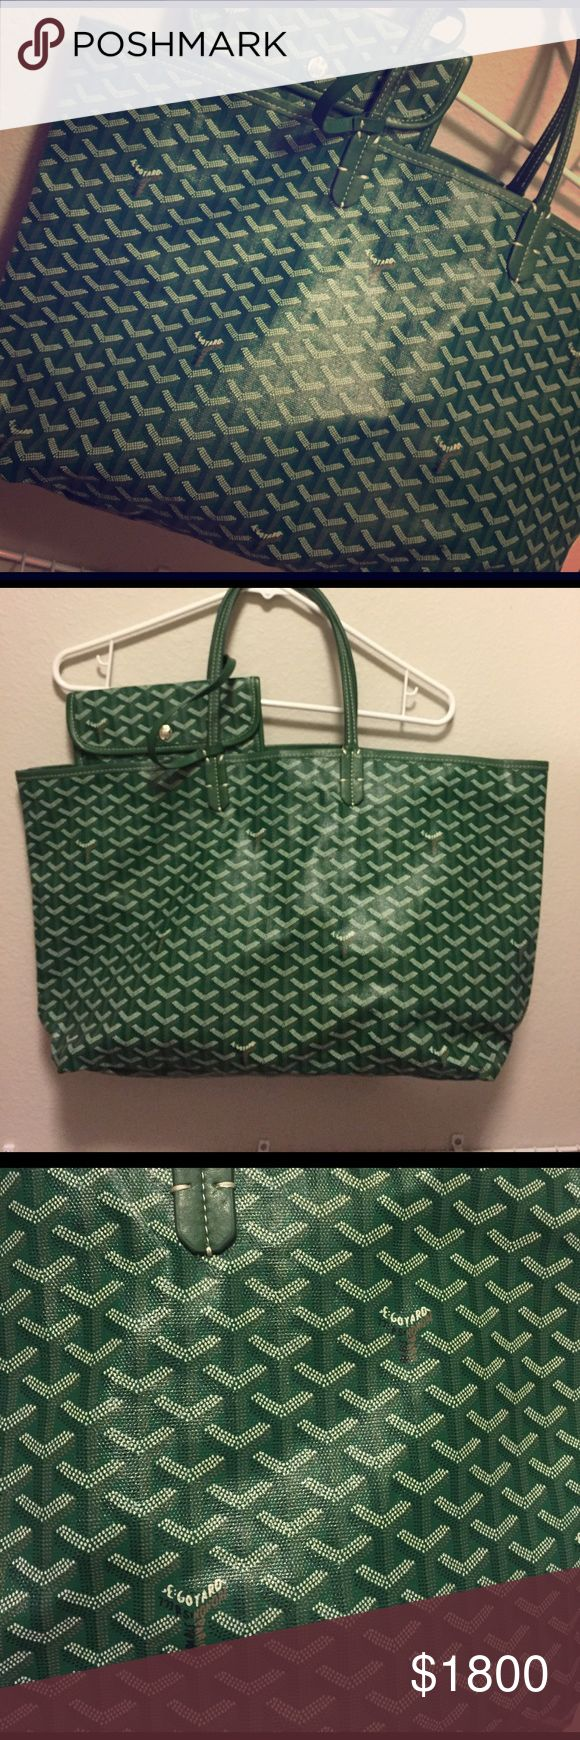 Goyard tote bag Never-worn Goyard classic chevron St. Louis gm tote bag with matching wallet attached. Goyard Bags Shoulder Bags